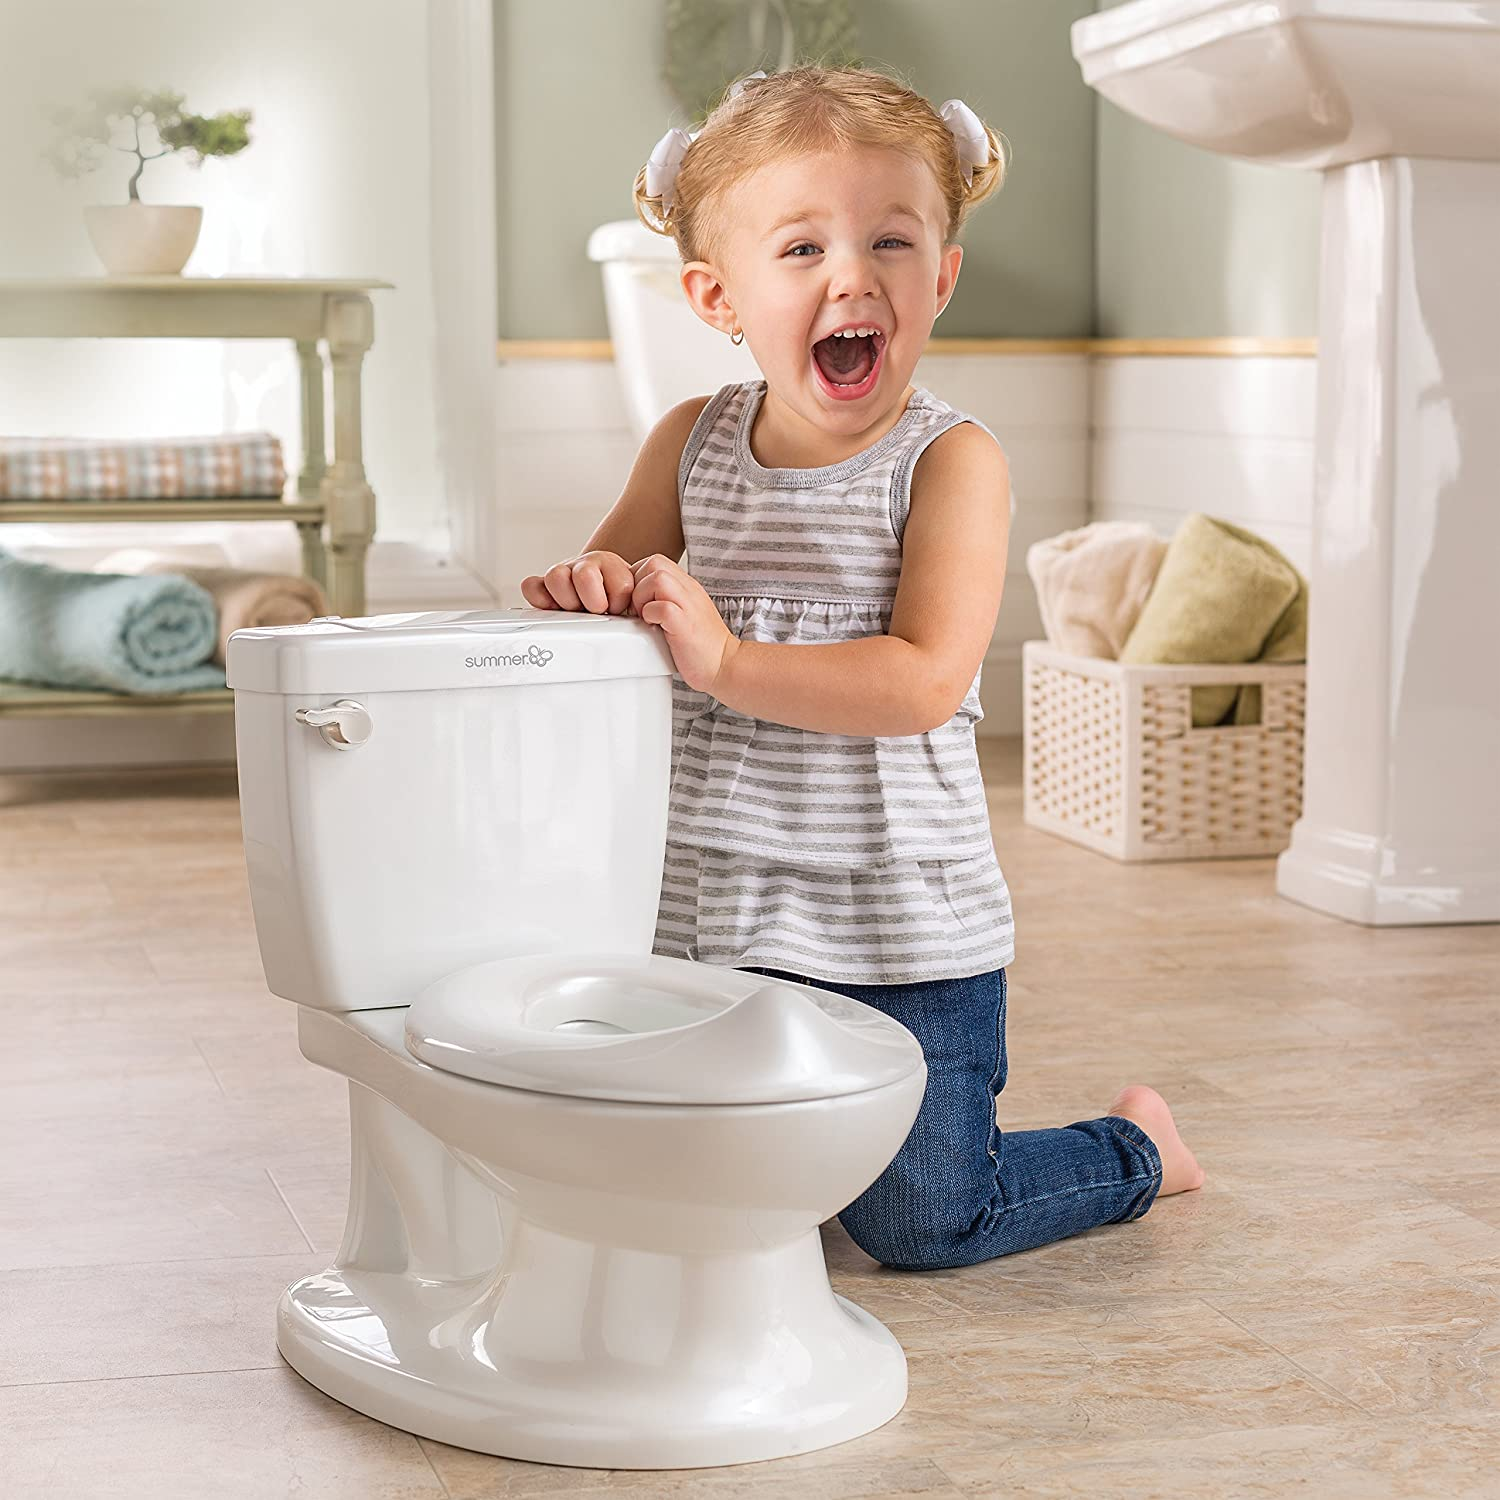 Summer My Size Potty, White – Realistic Potty Training Toilet Looks and Feels Like an Adult Toilet